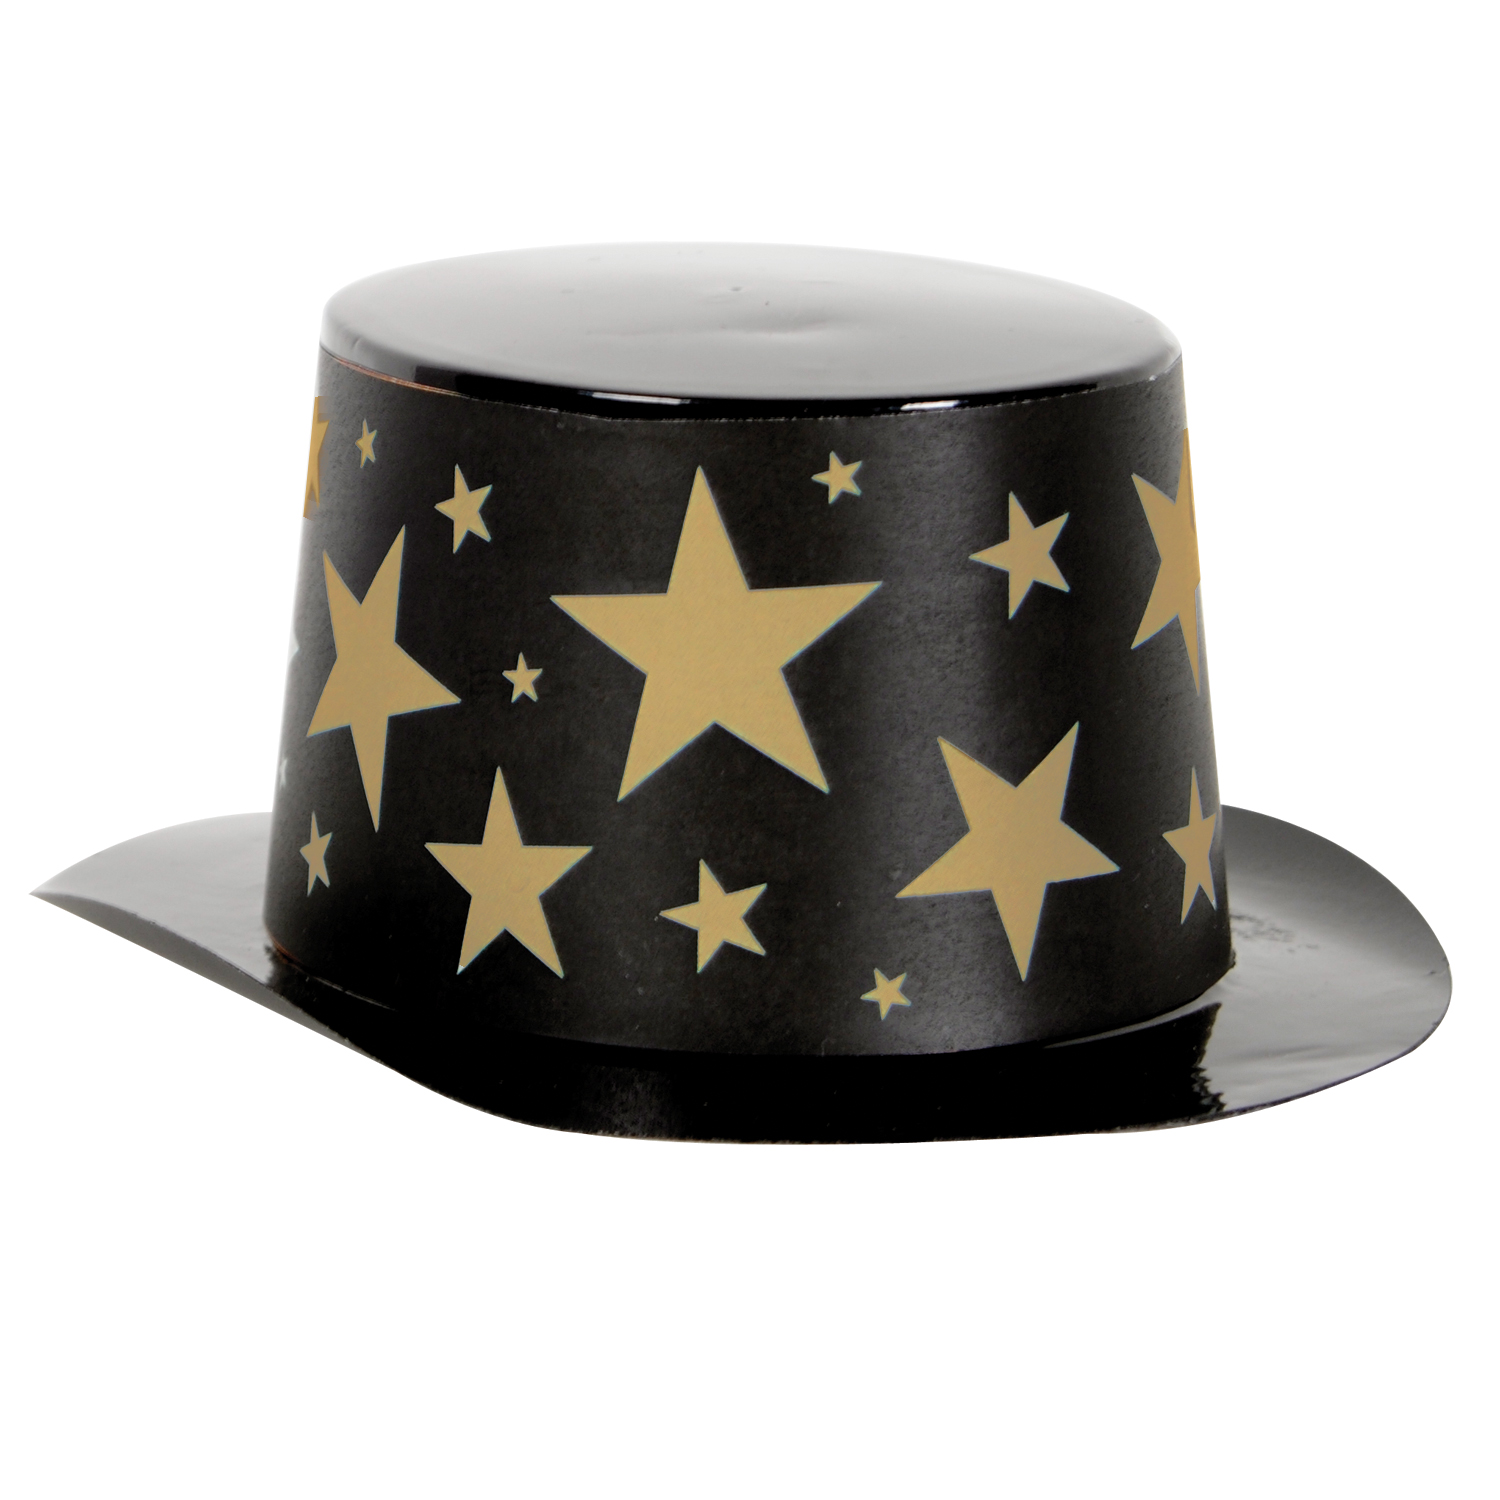 Mini Black Plastic Topper Star Band 4.75x2in black & gold